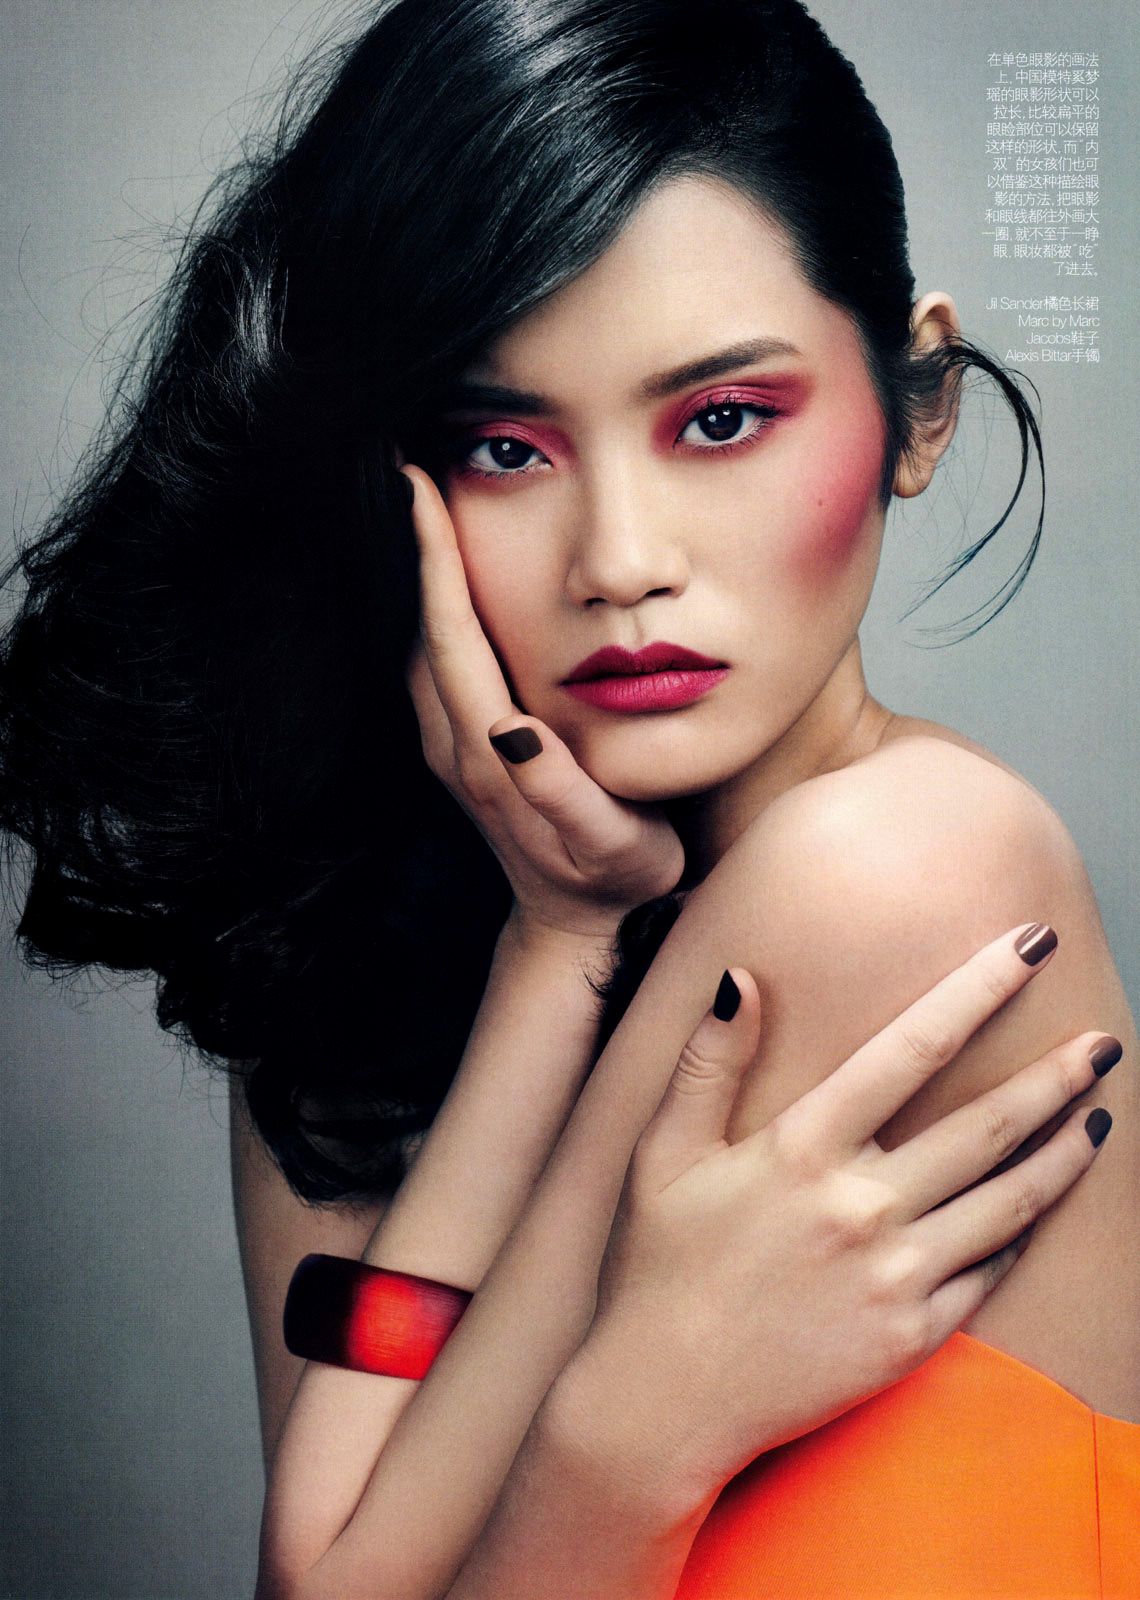 ASIAN MODELS BLOG: EDITORIAL: Ming Xi In Vogue China